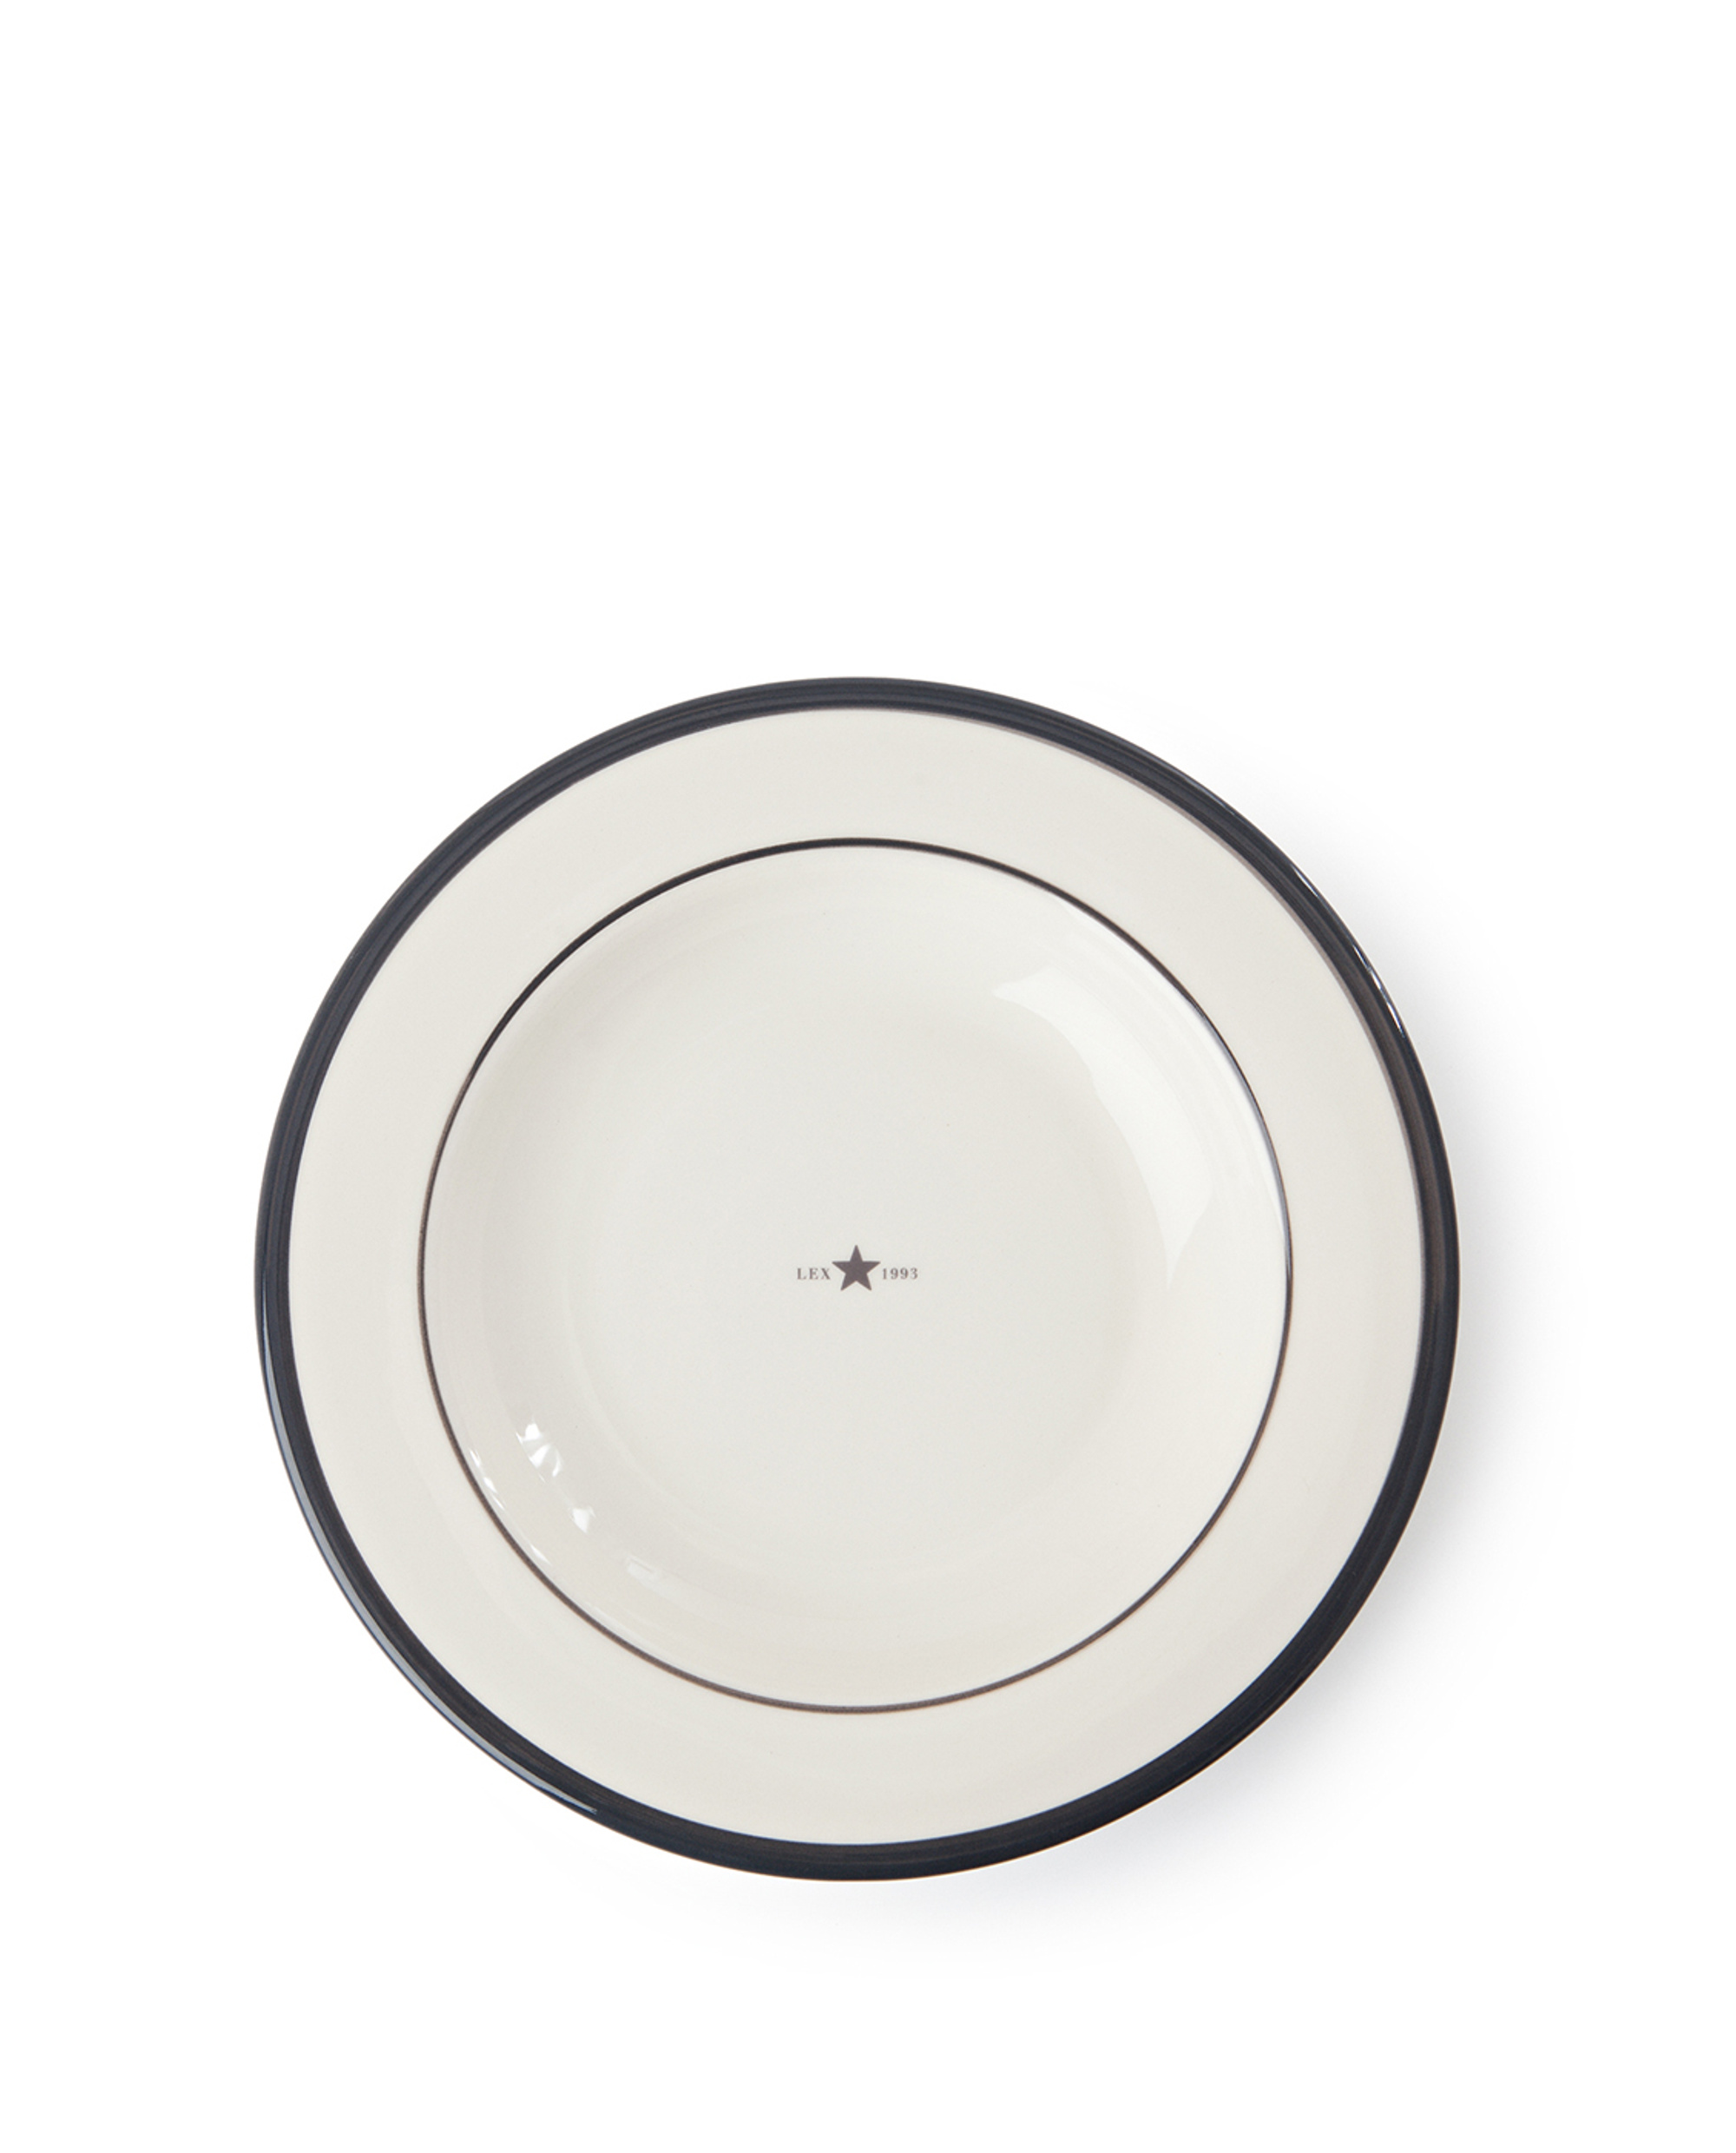 Icons Soup Plate 24 cm, Gray